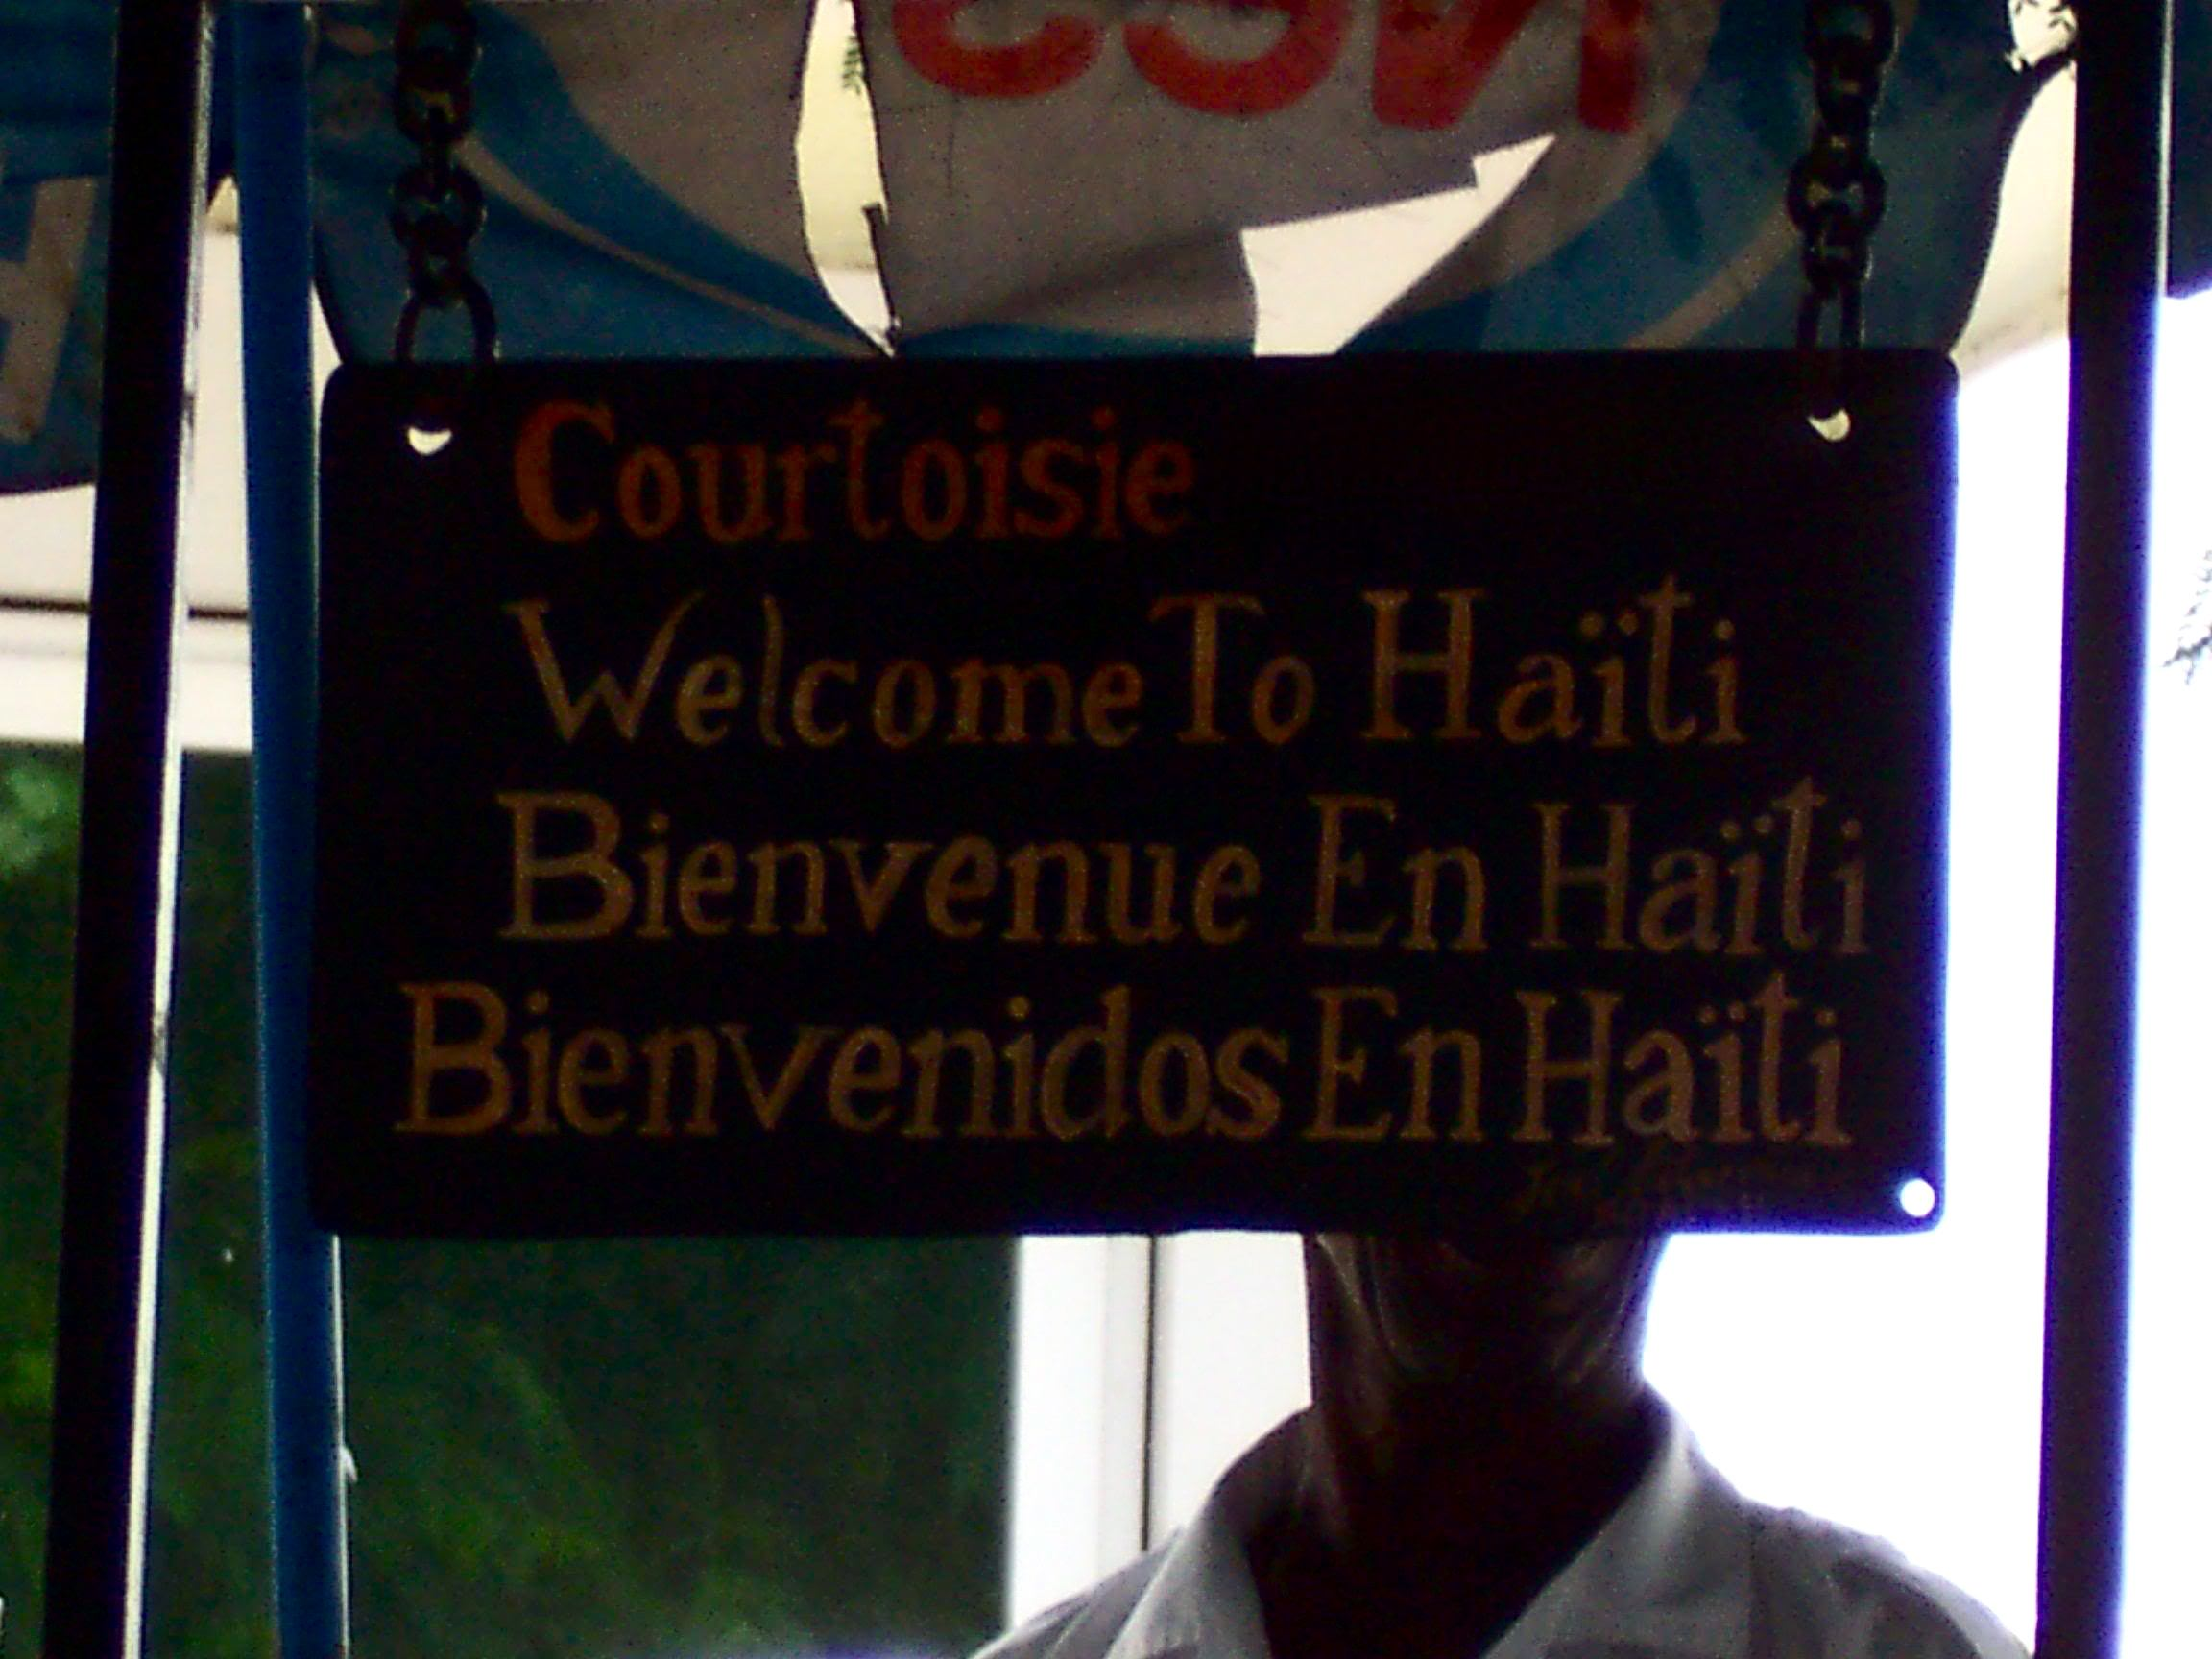 welcometohaiti